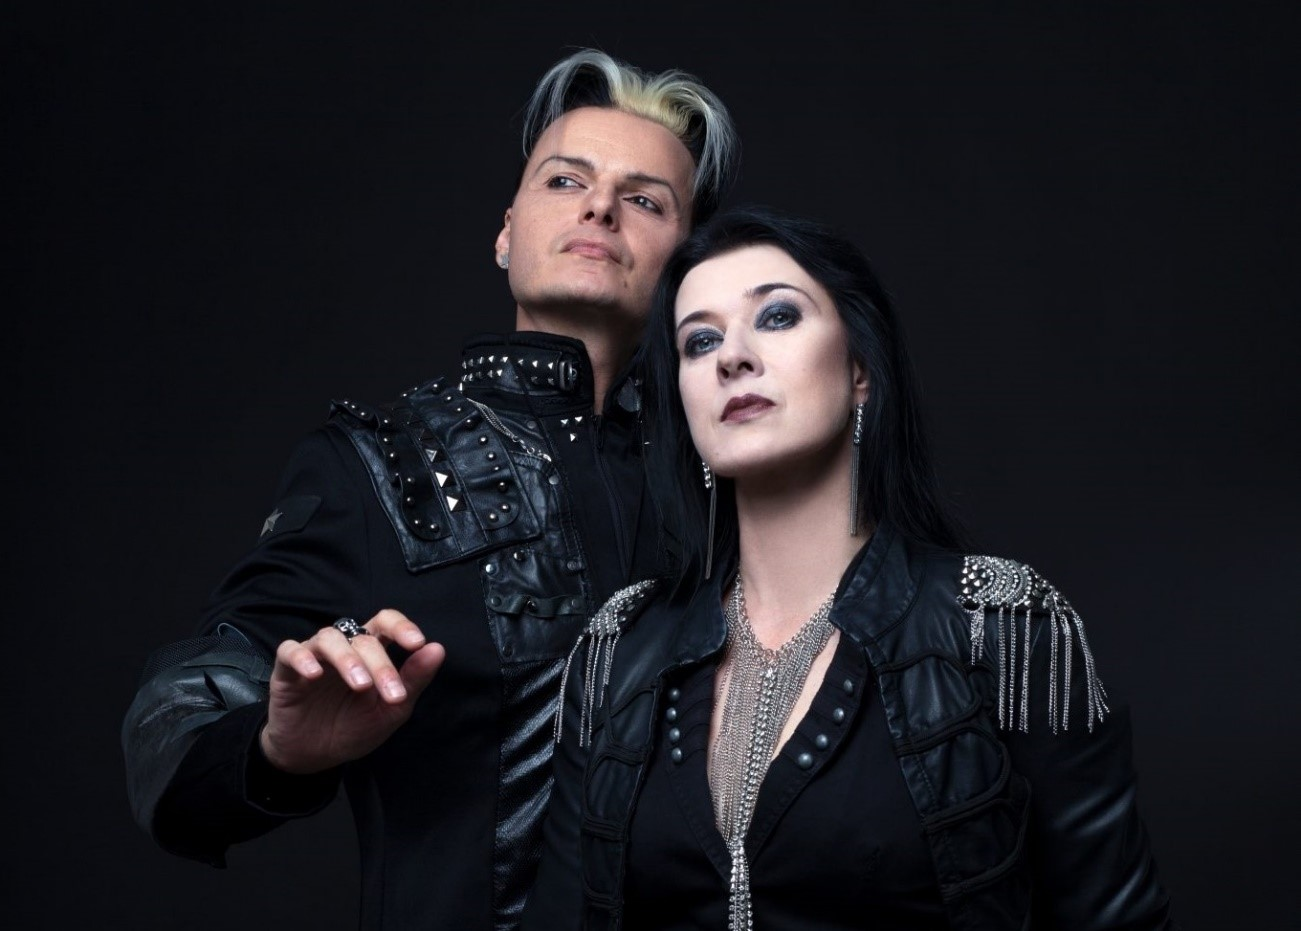 Lacrimosa llega a Argentina como parte de su Time Travel World Tour 2019